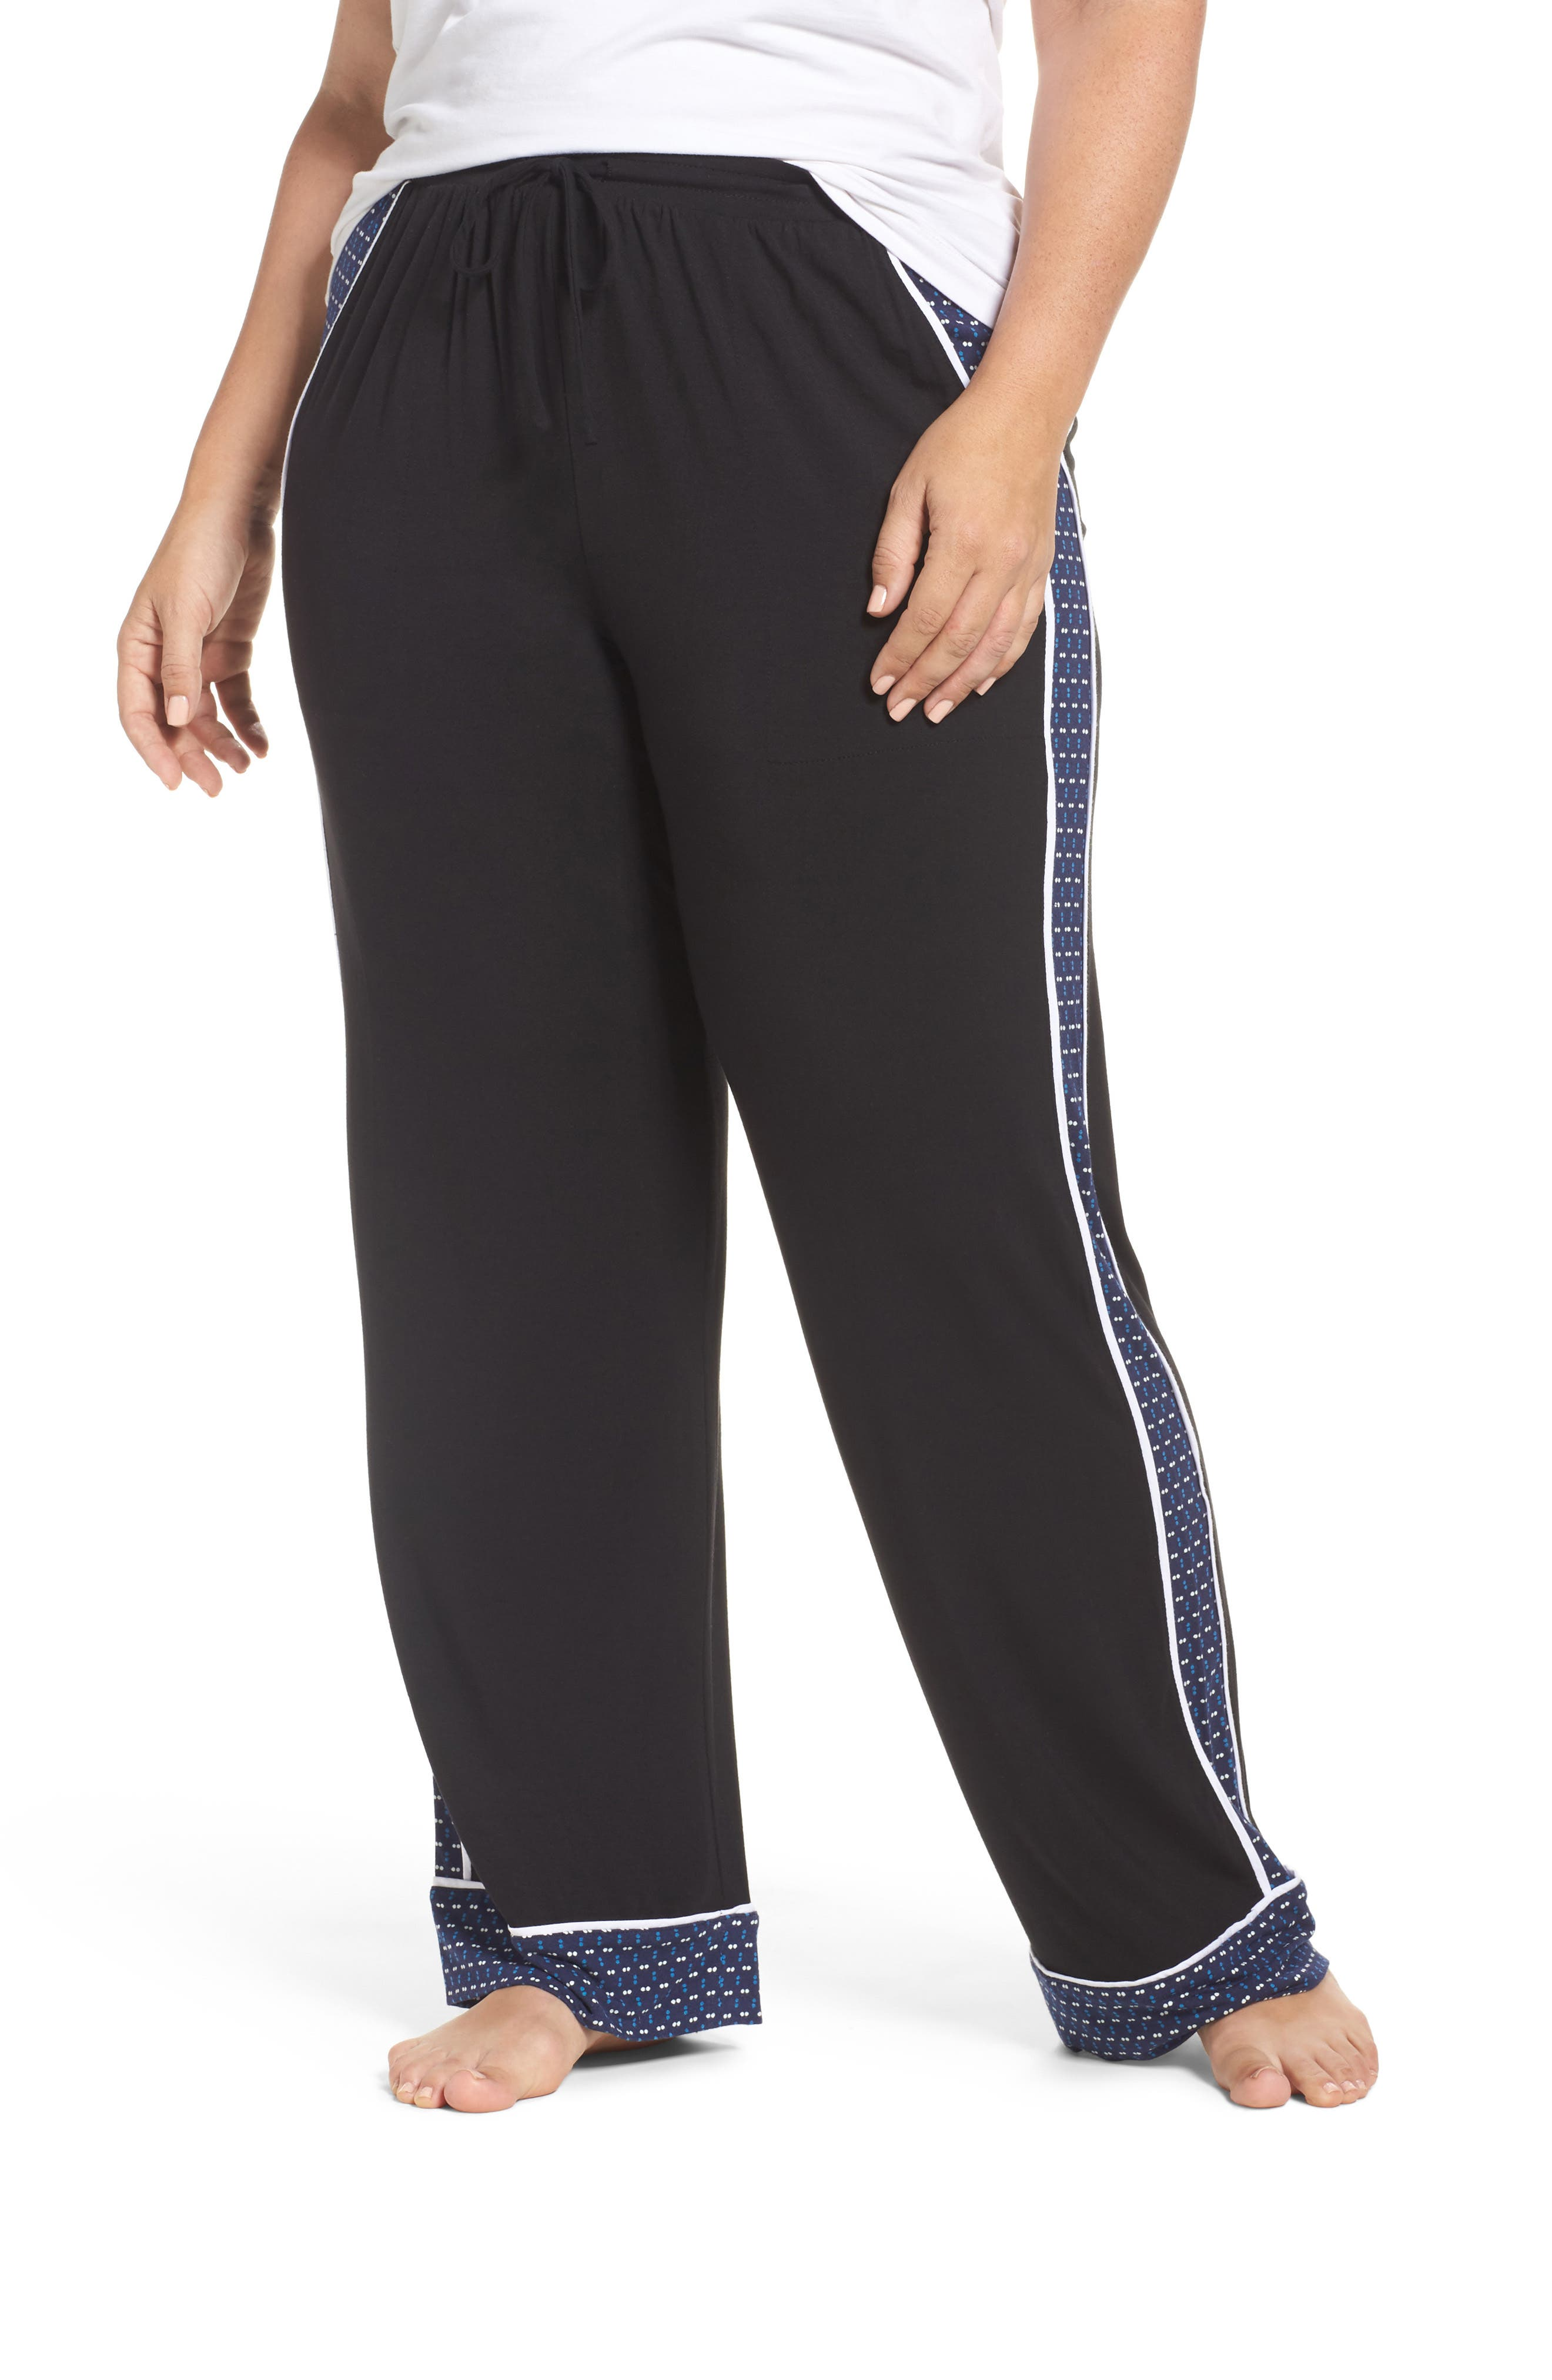 DKNY Pajama Pants (Plus Size)